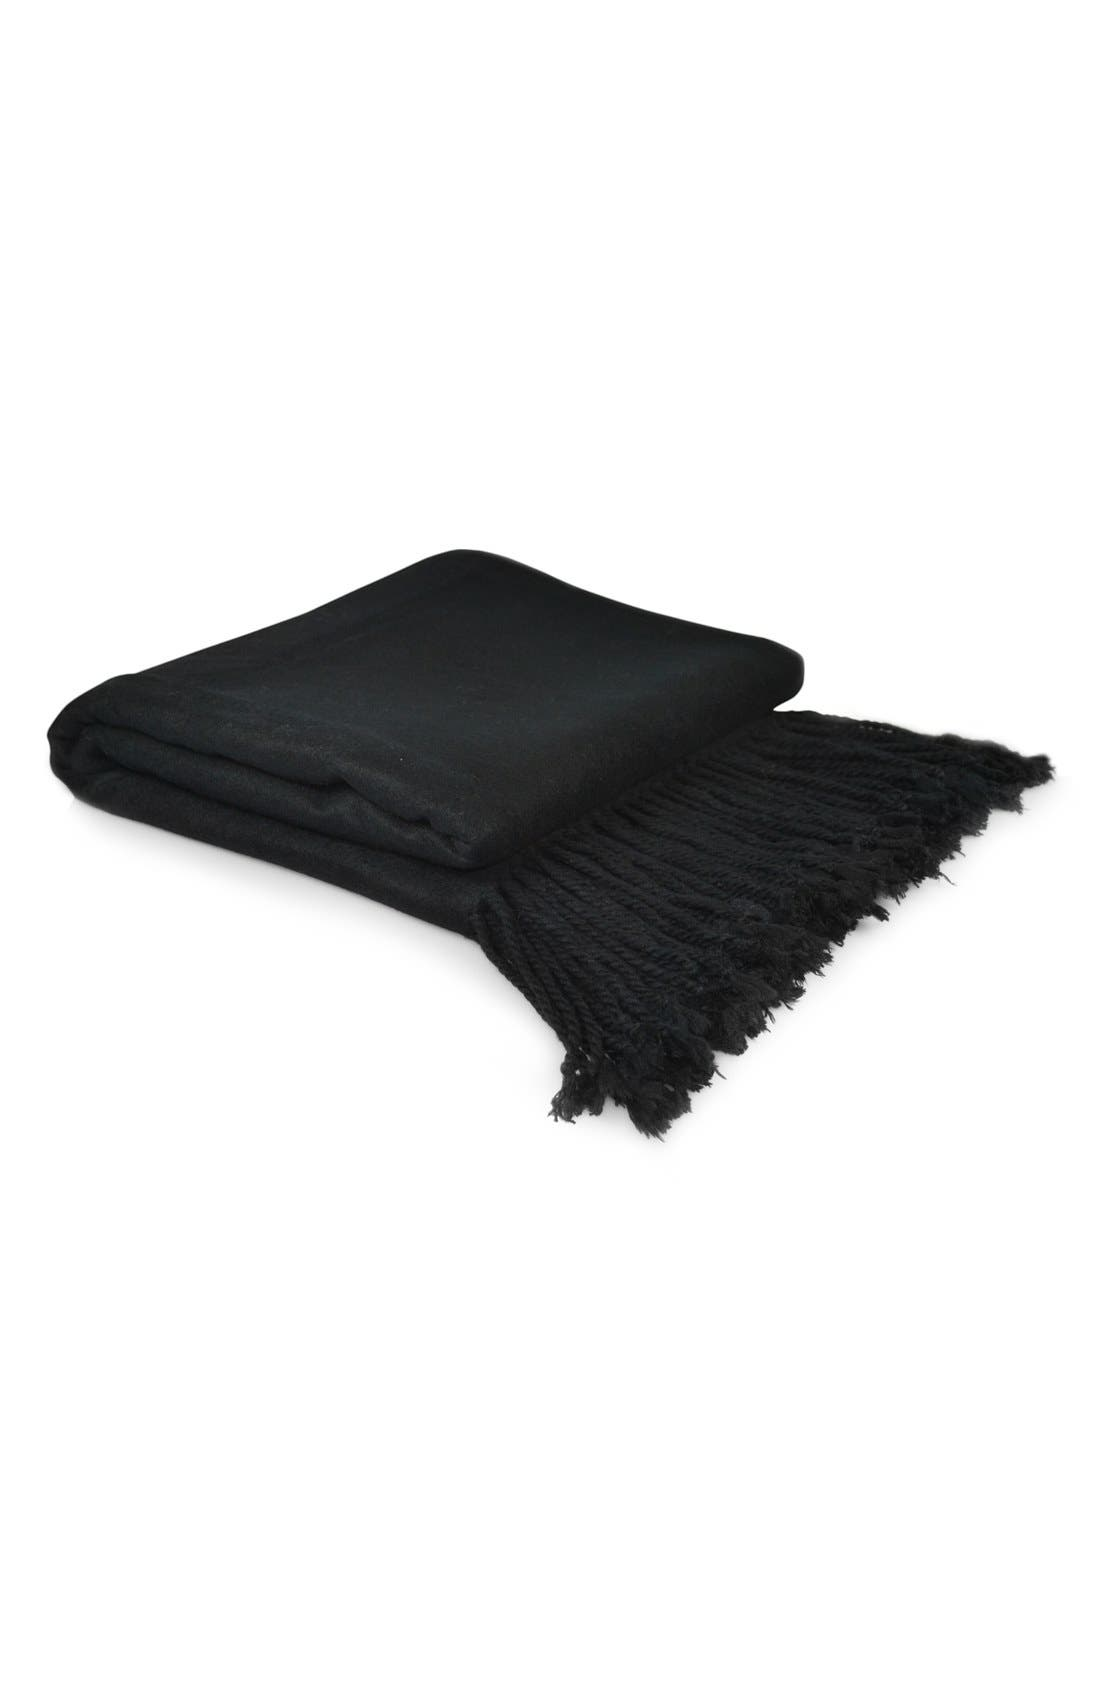 Main Image - Indigo 7 Fringe Velvet Throw